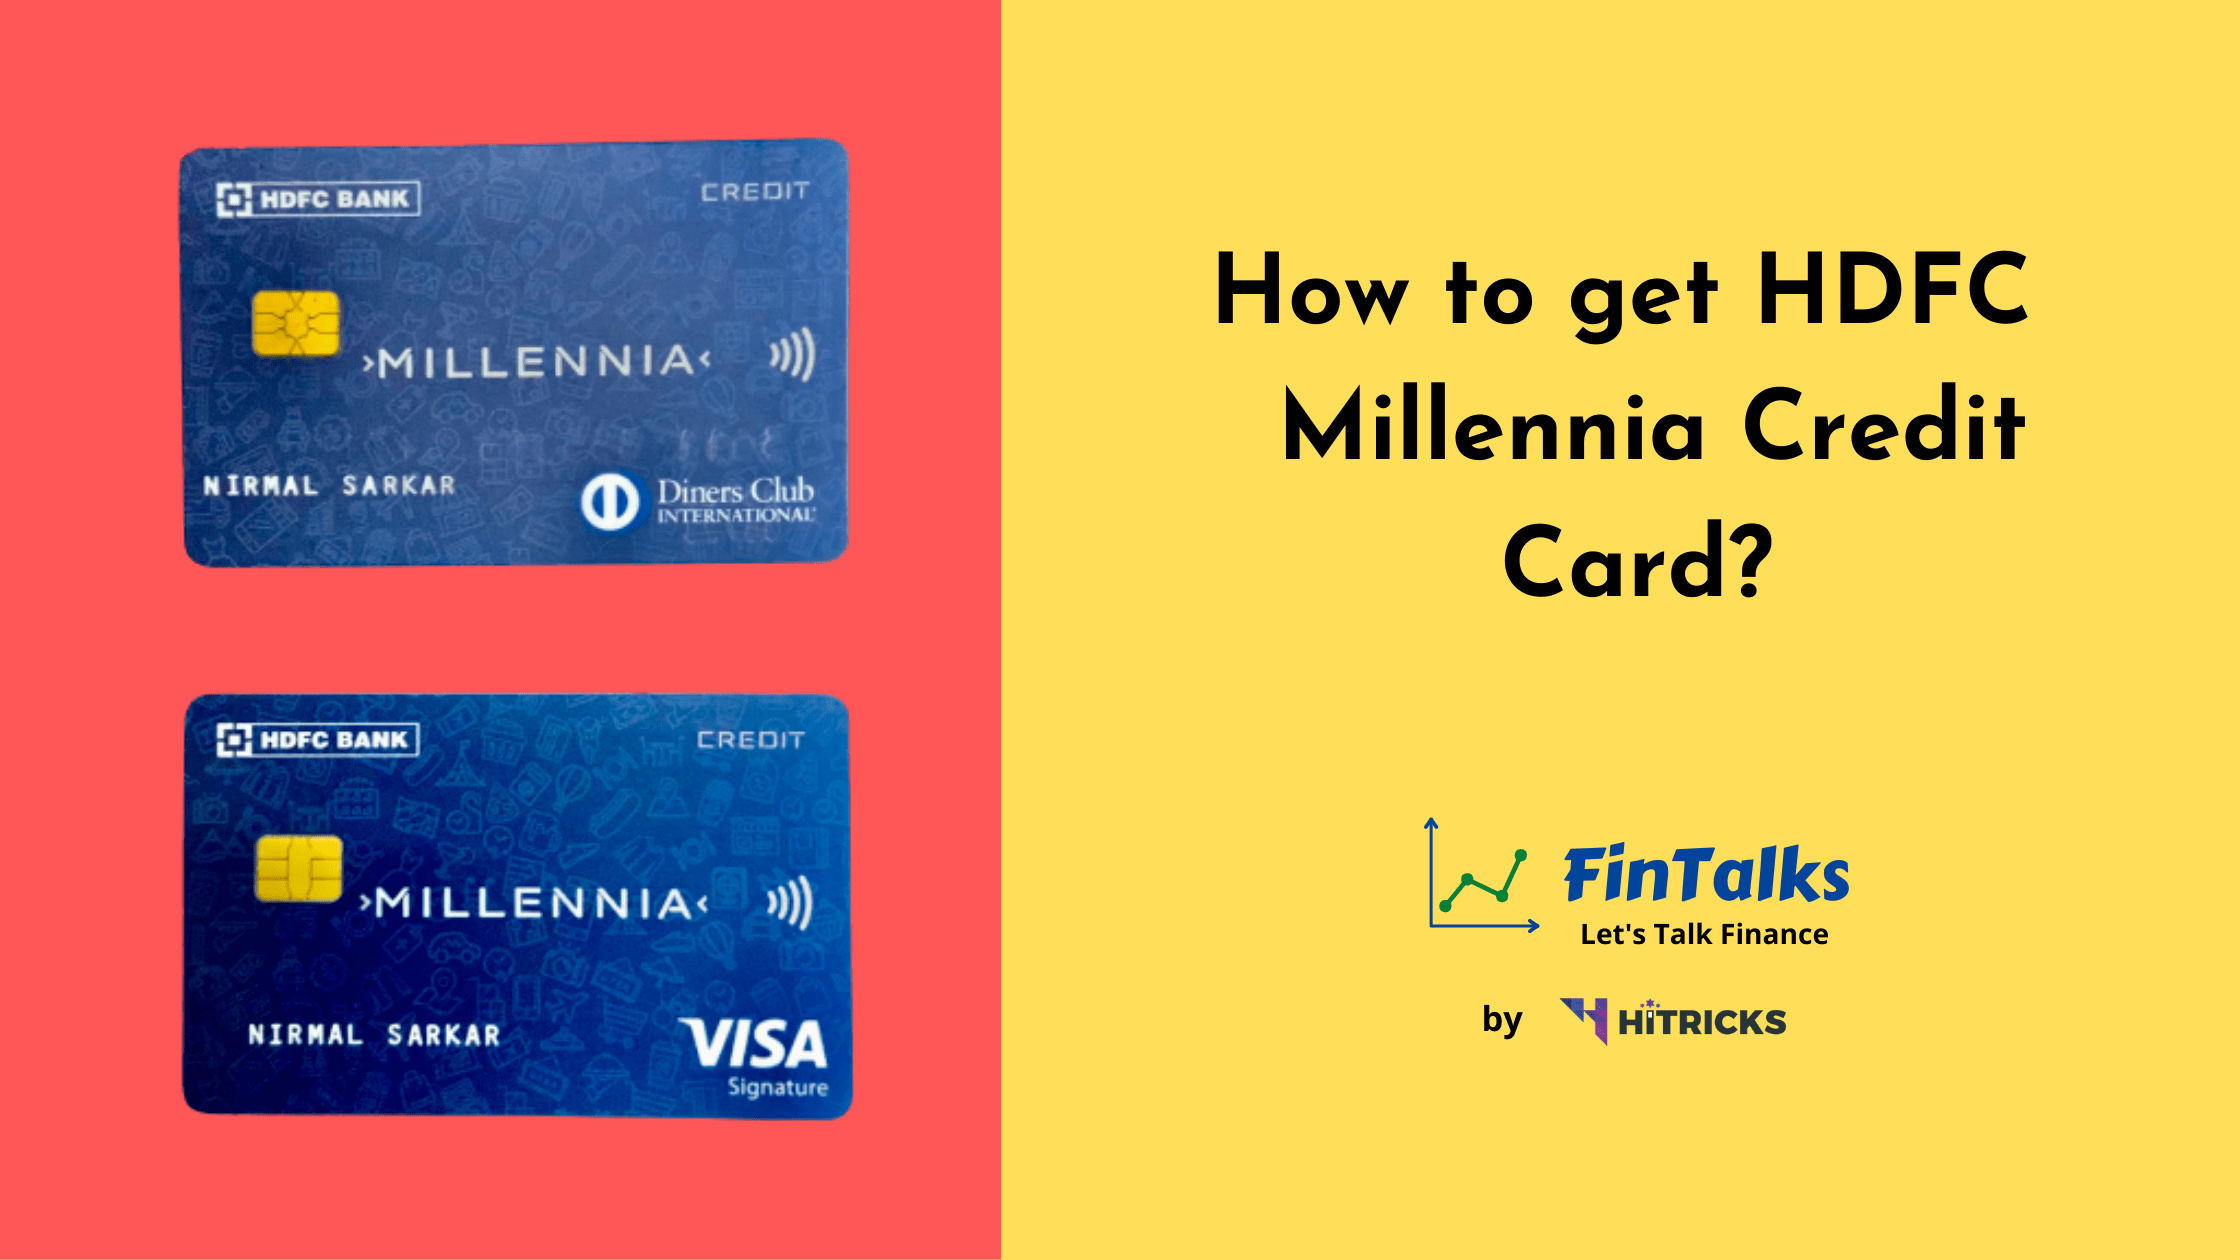 Guide: How to get HDFC Millennia Credit Card?